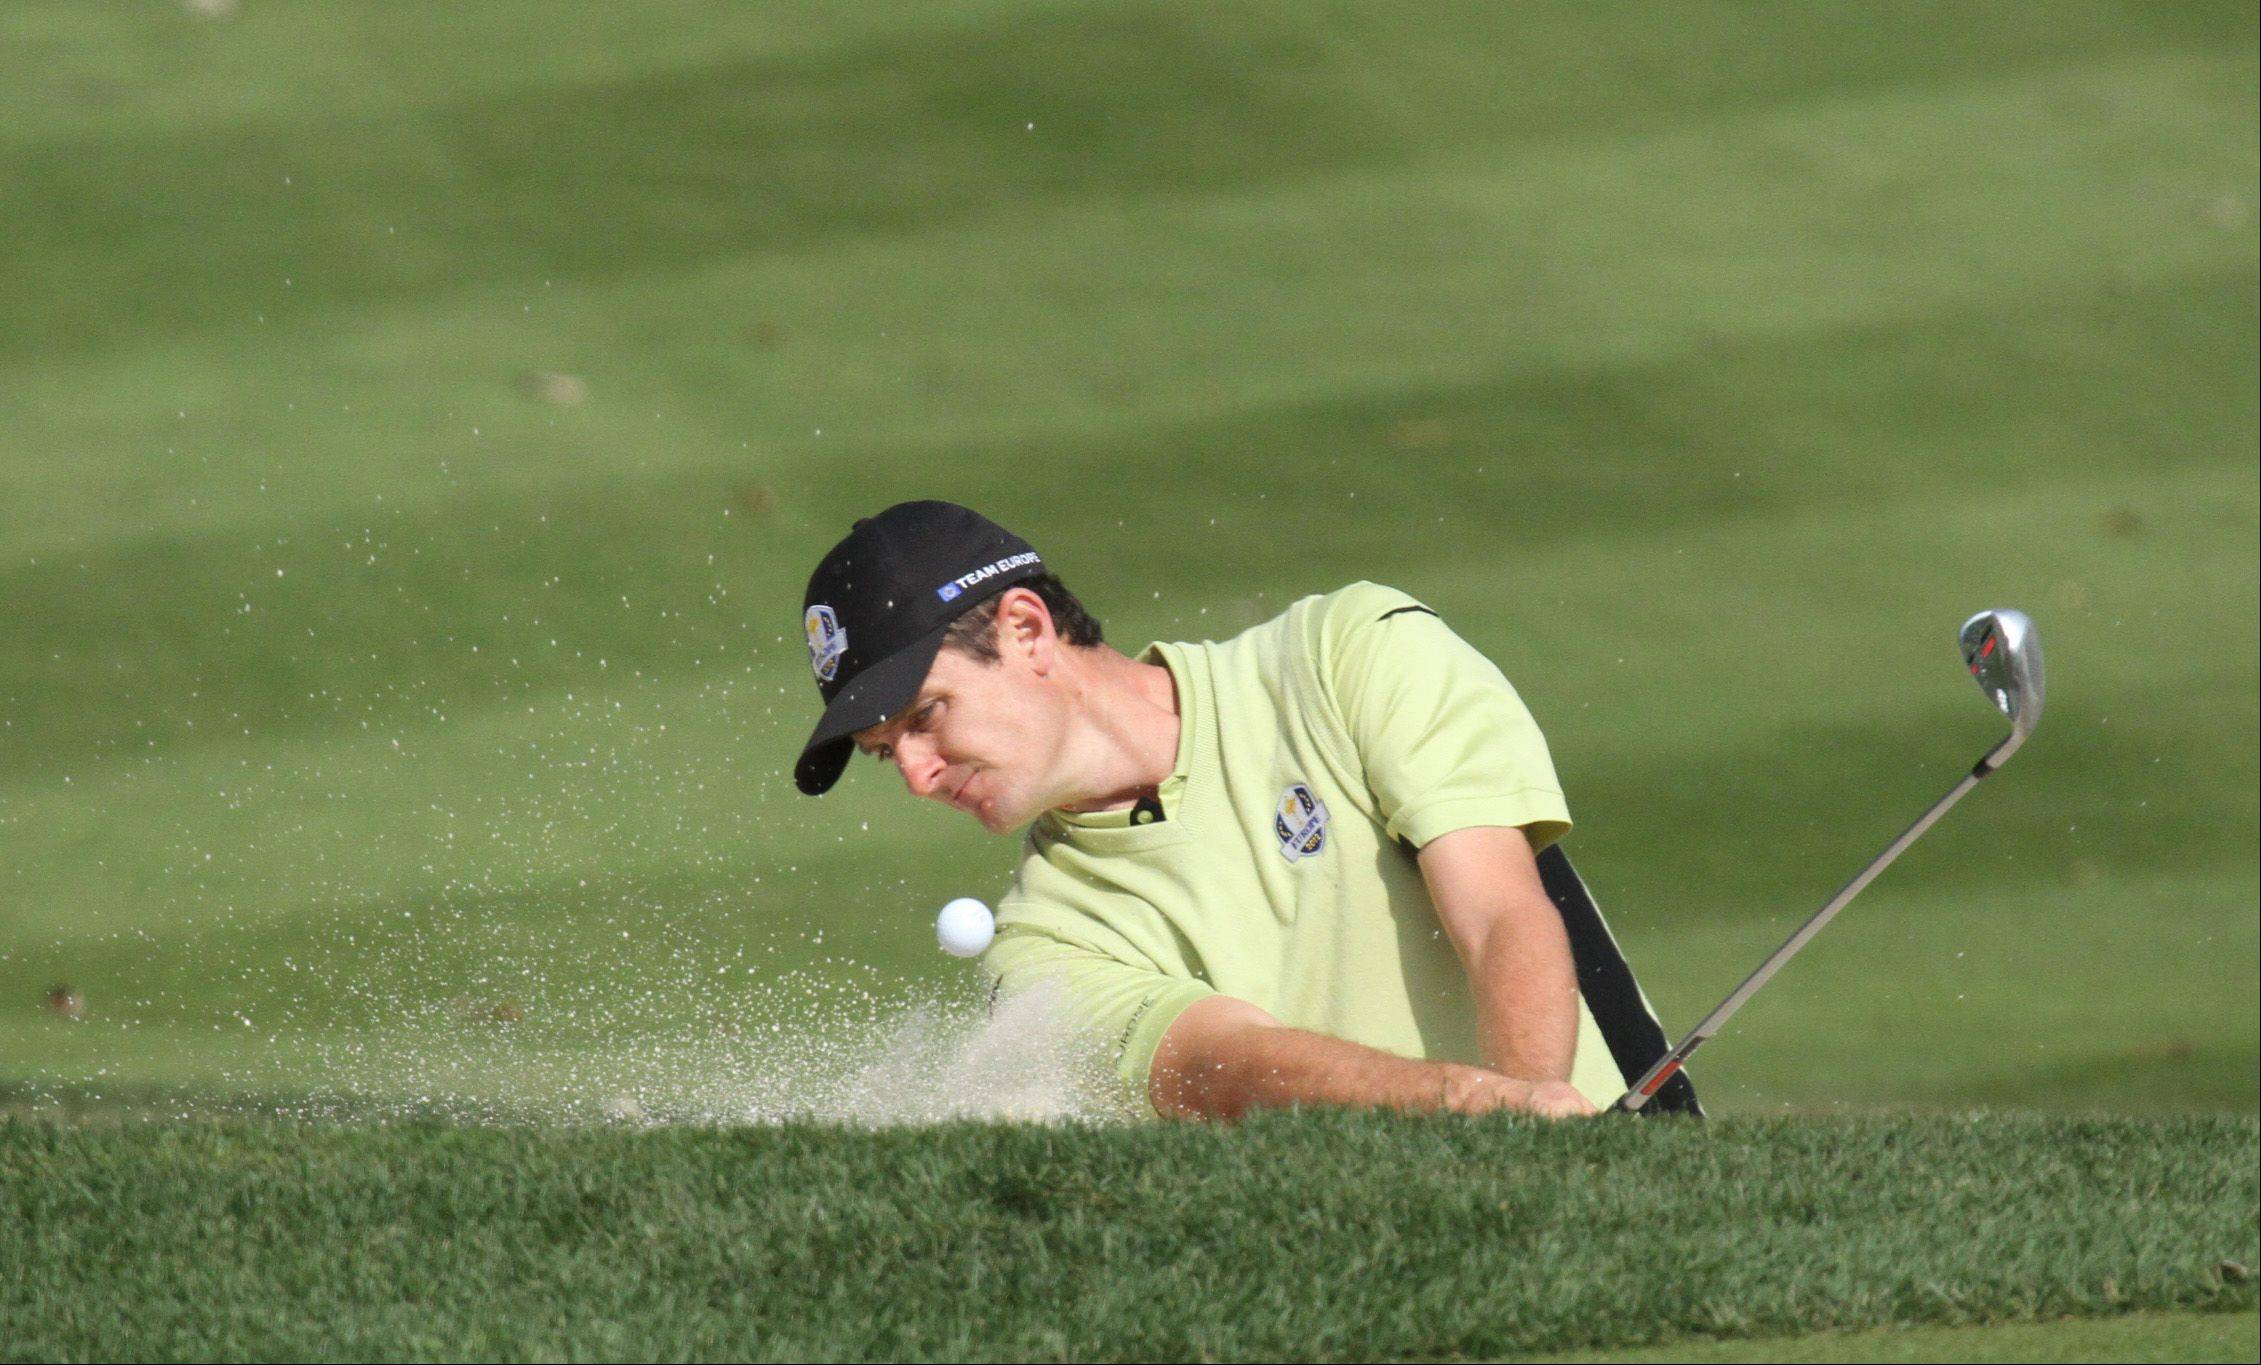 Luke Donald chipping out of the bunker on the 14th hole during opening round play of the 2012 Ryder Cup at Medinah Country Club.